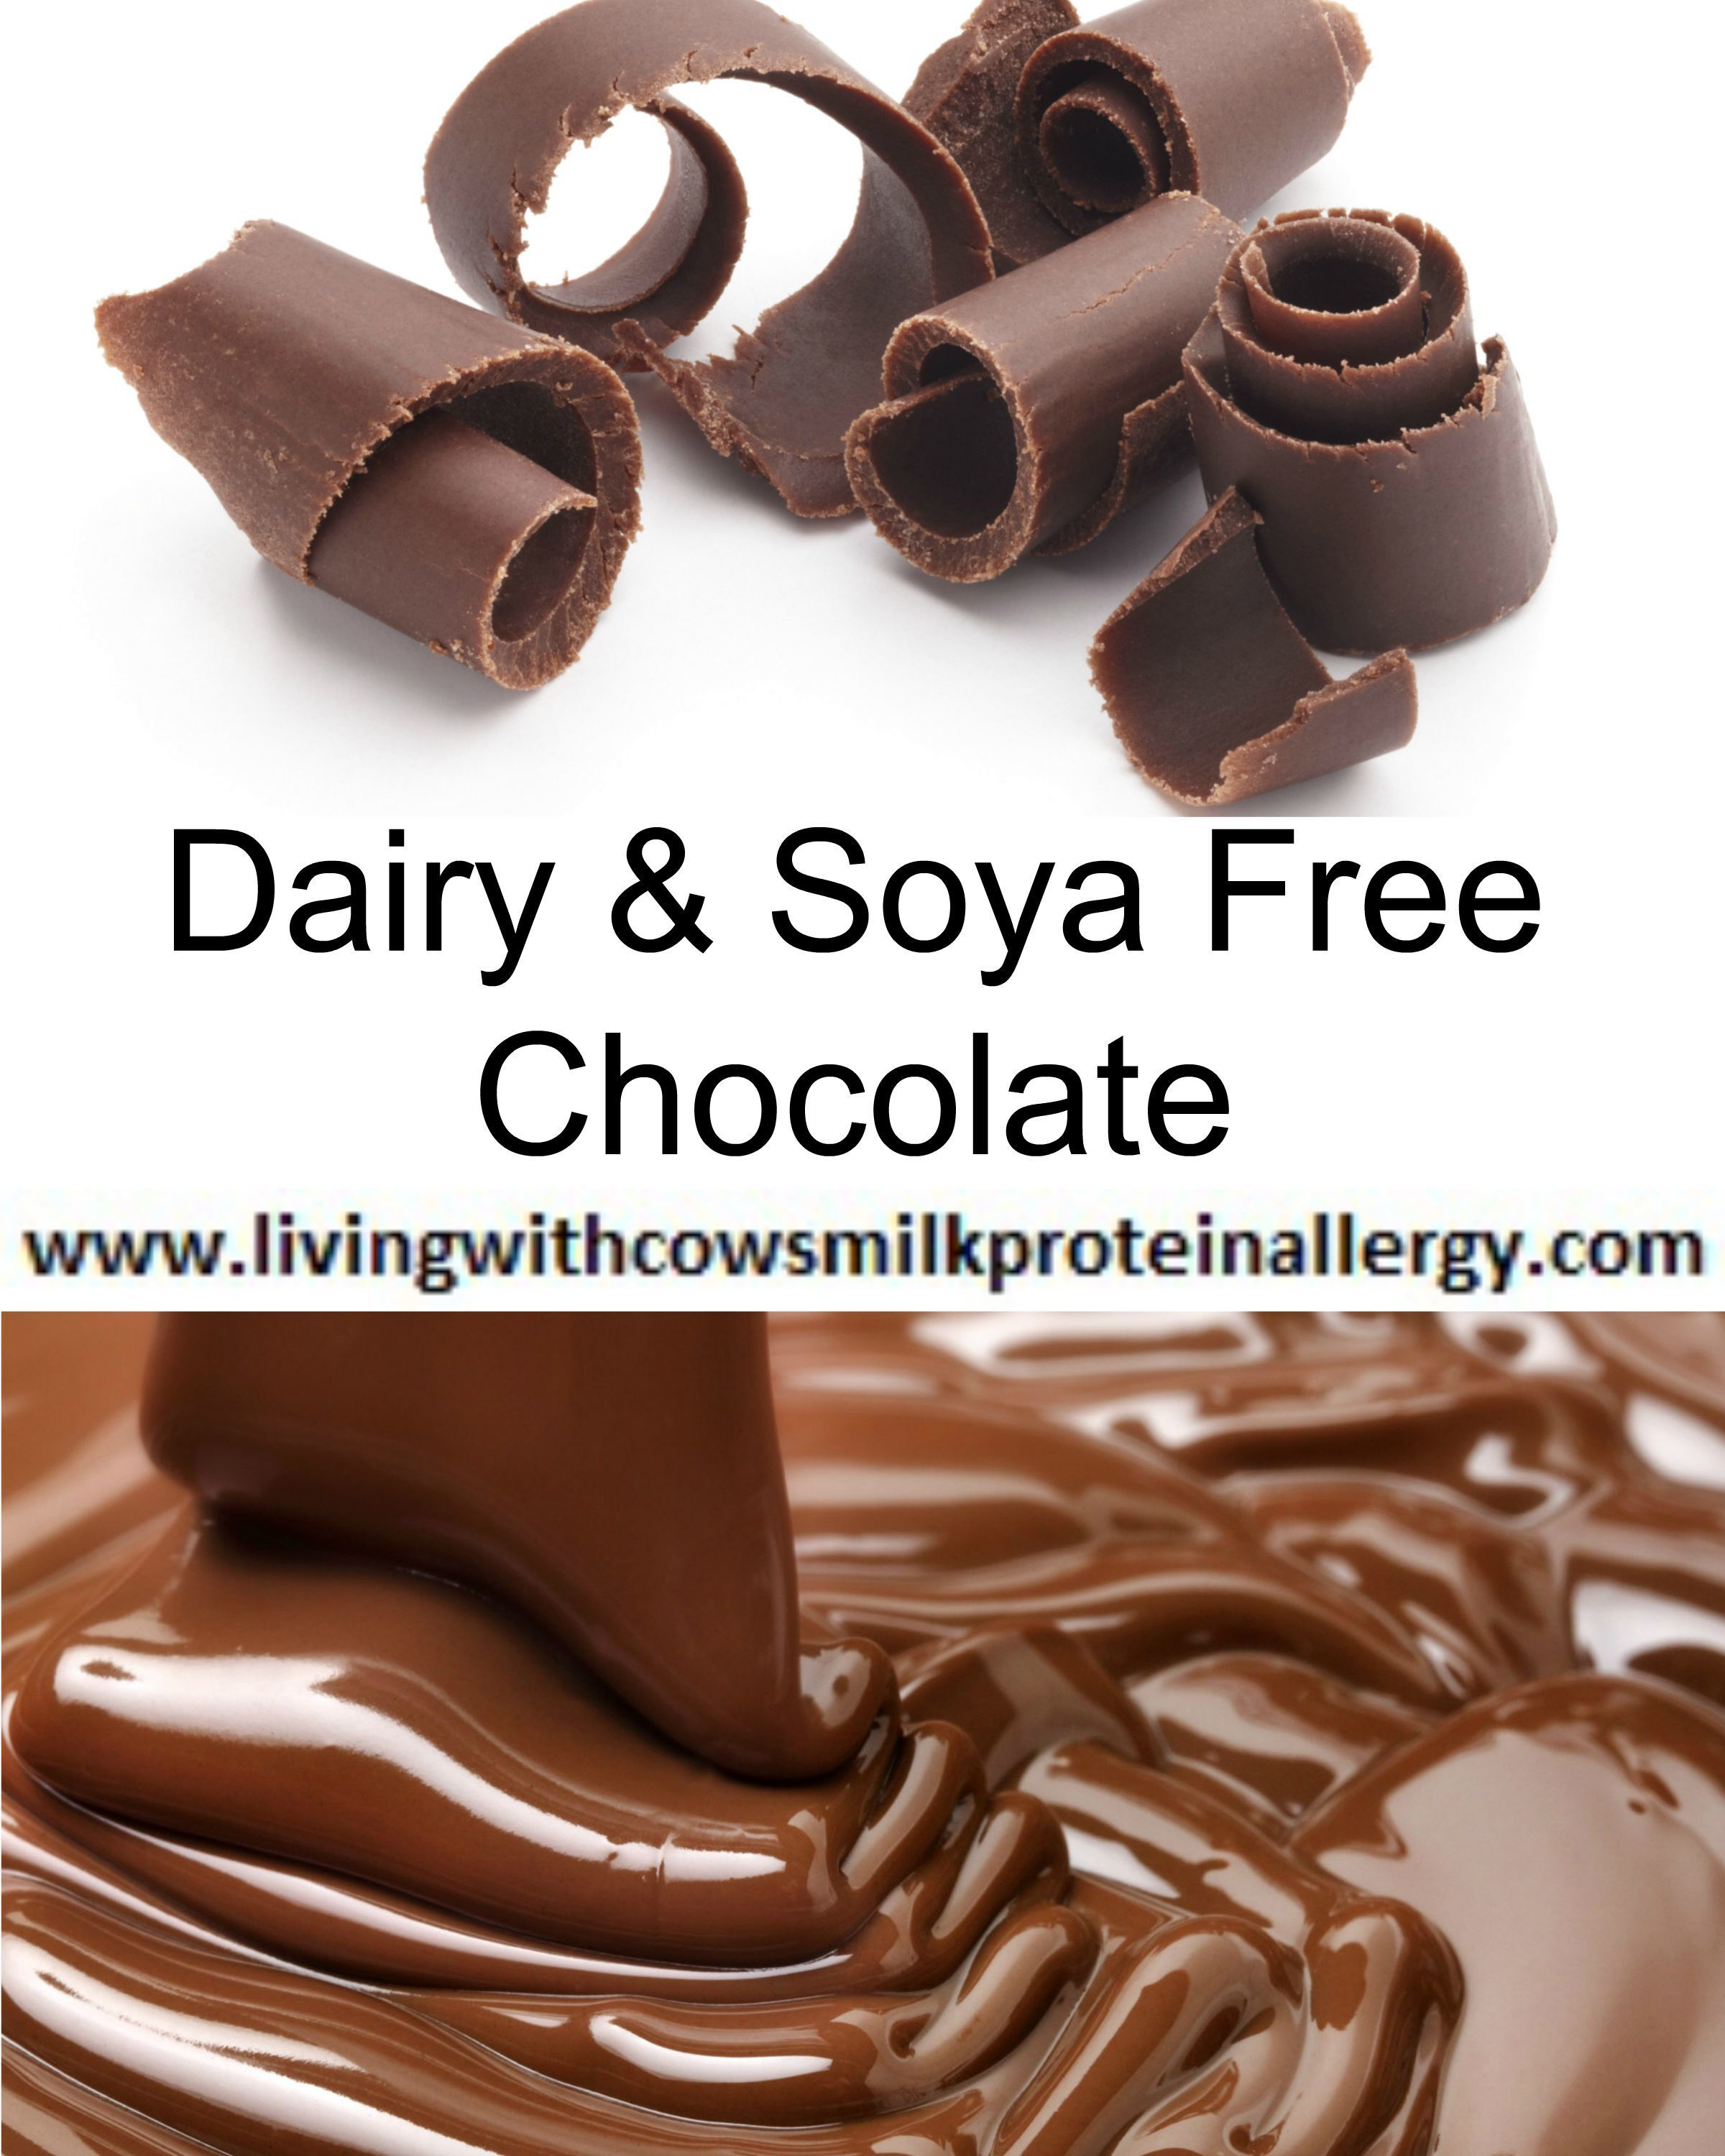 A List Of Dairy & Soya Free Chocolate (UK)